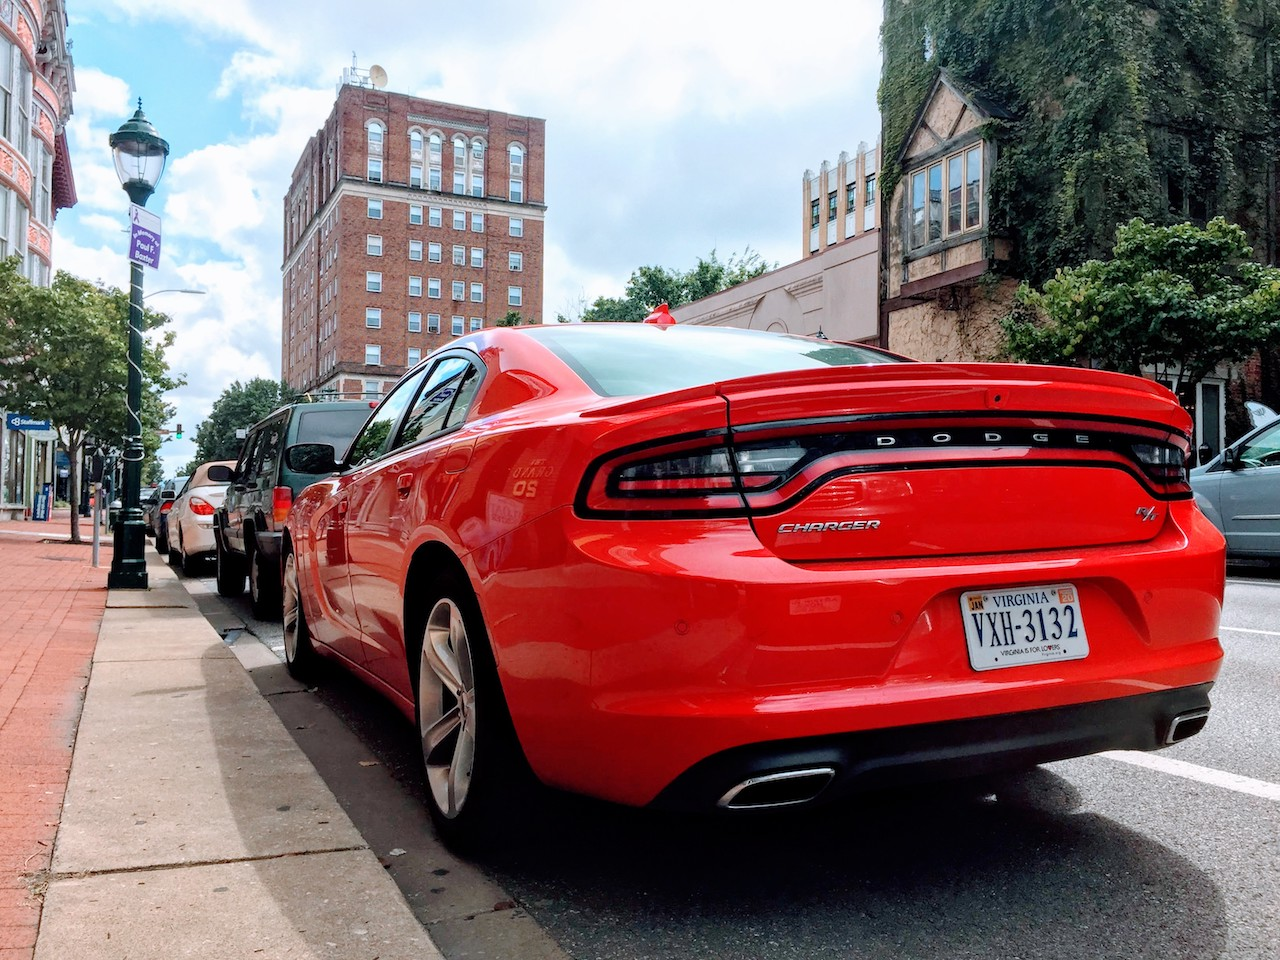 2018 Dodge Charger R/T rear